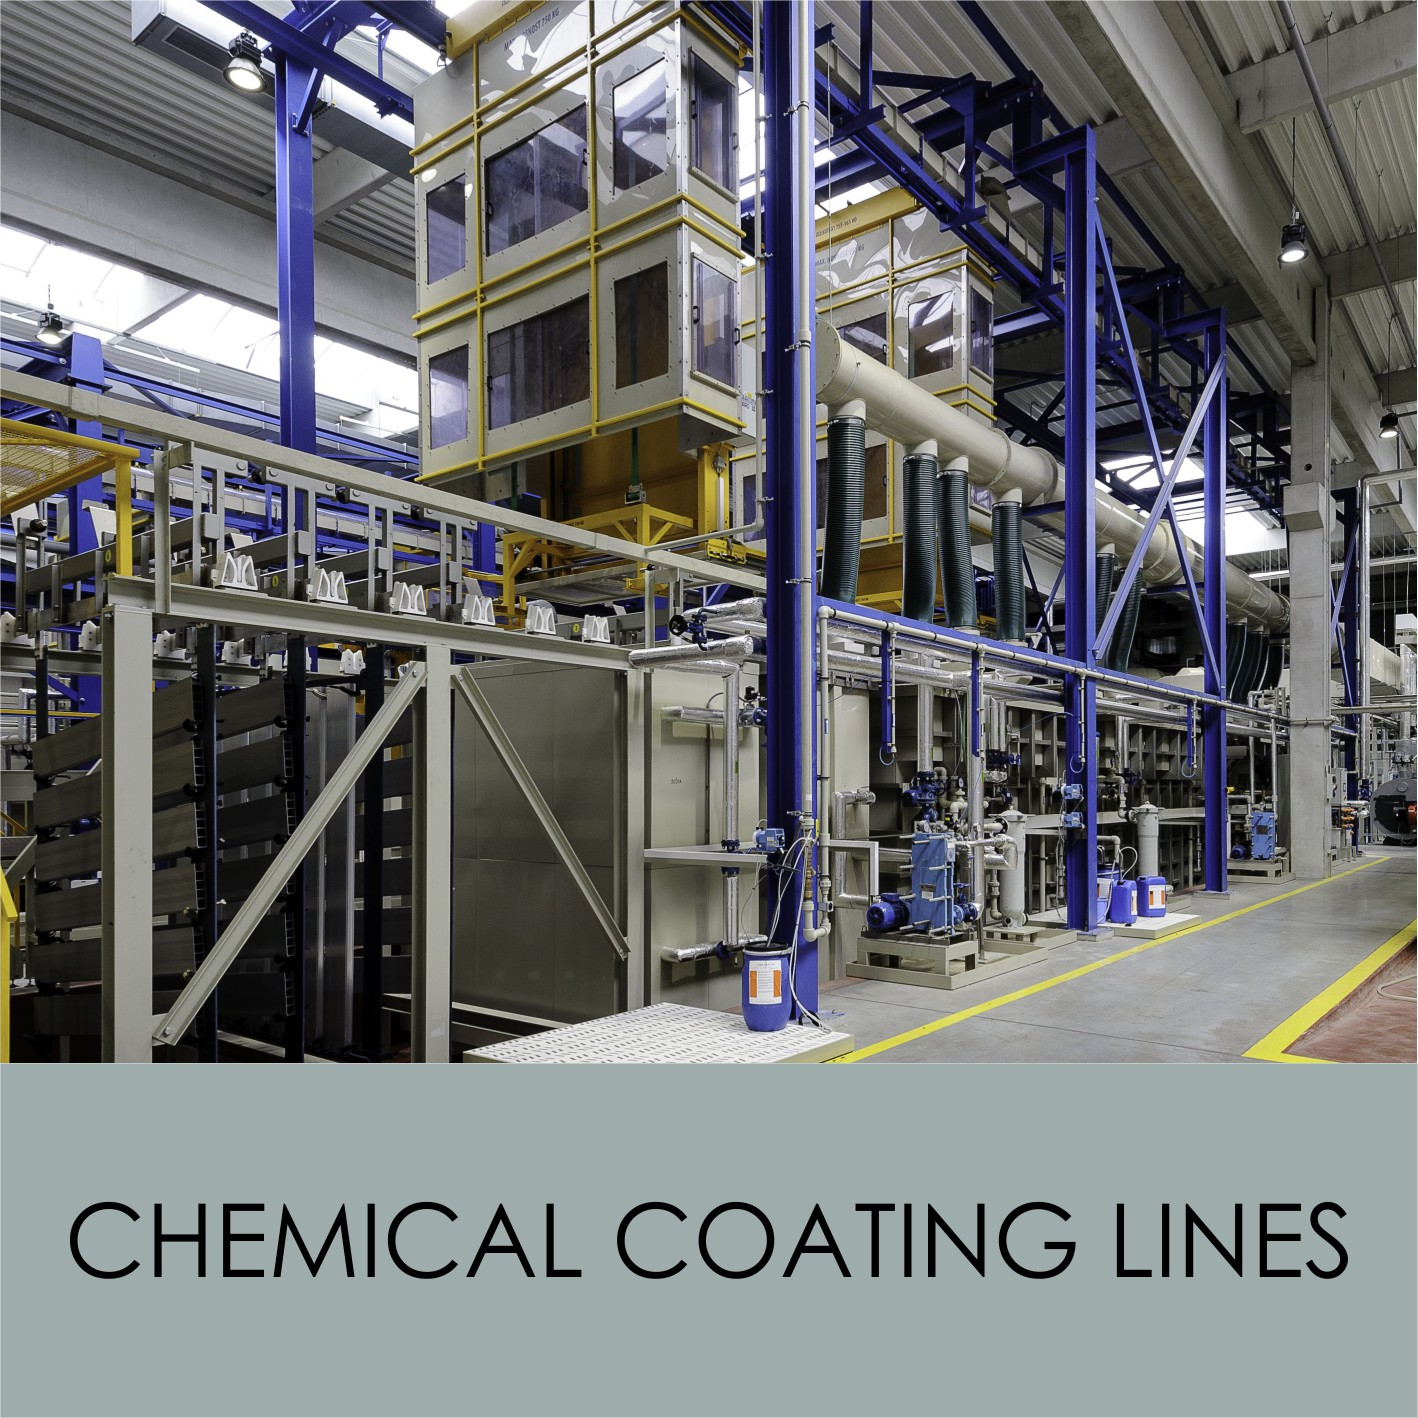 Chemical coating lines